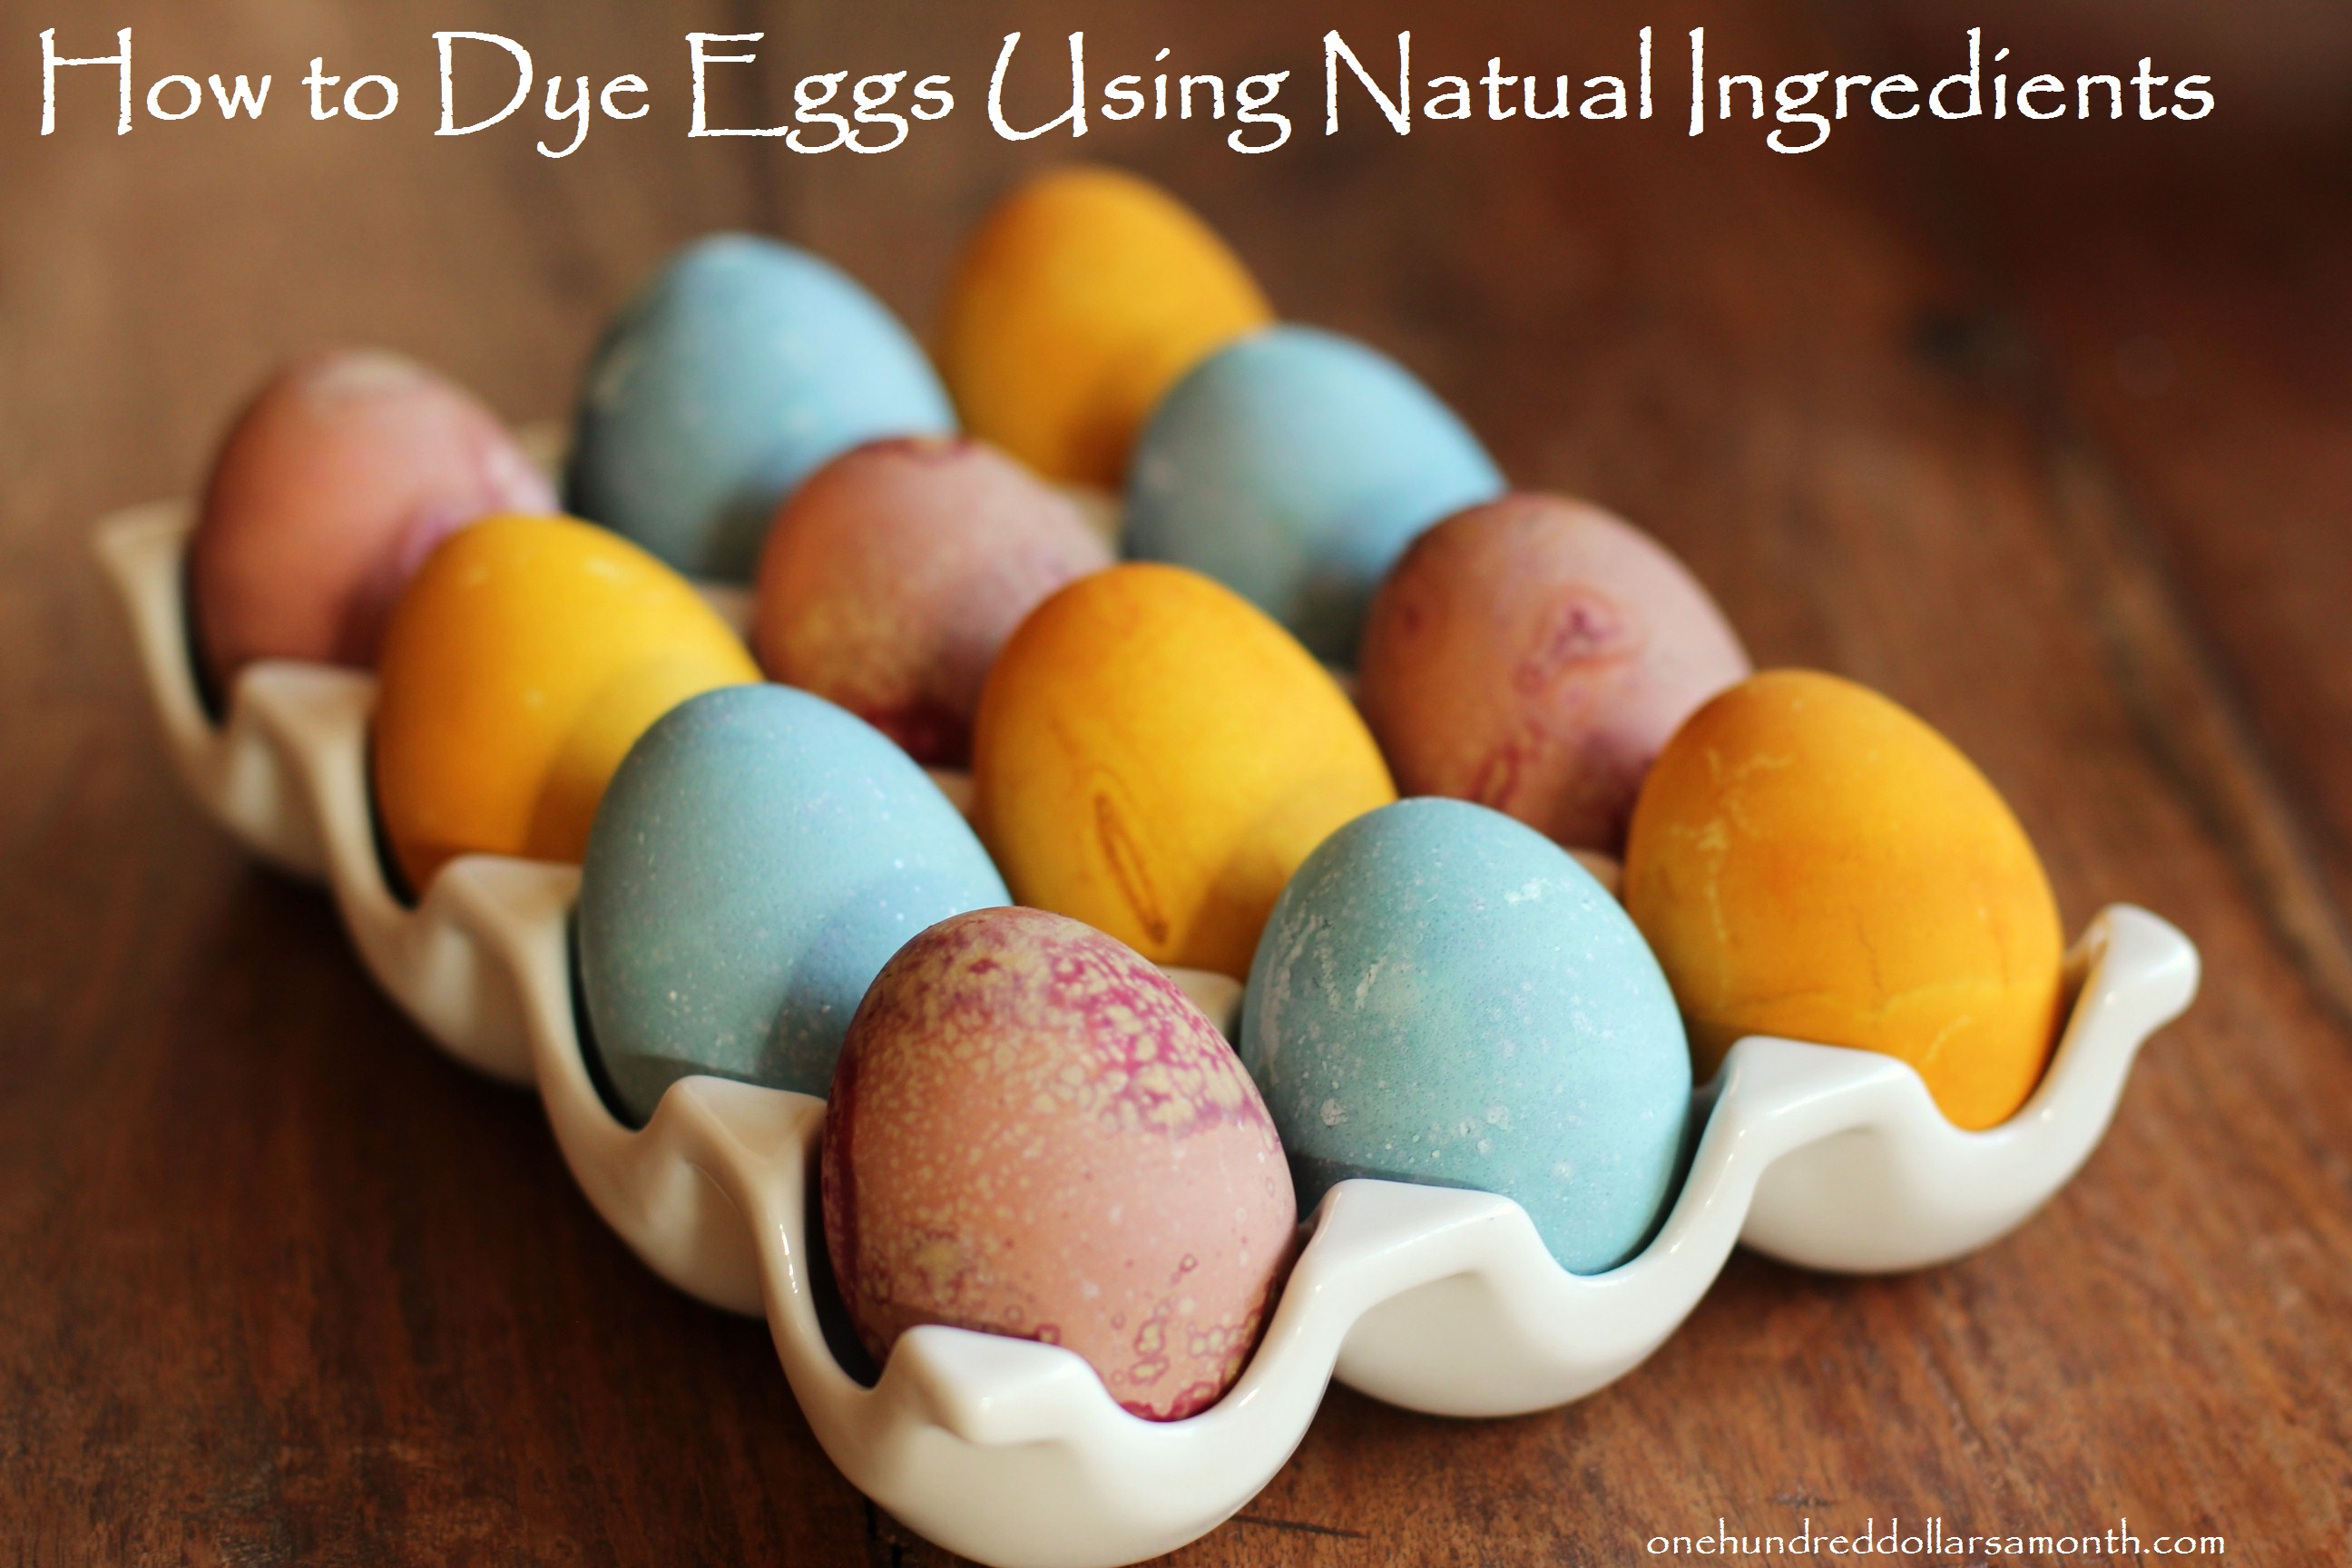 Easy Easter Craft: How to Dye Eggs With Natural Ingredients ~ No Dyes!